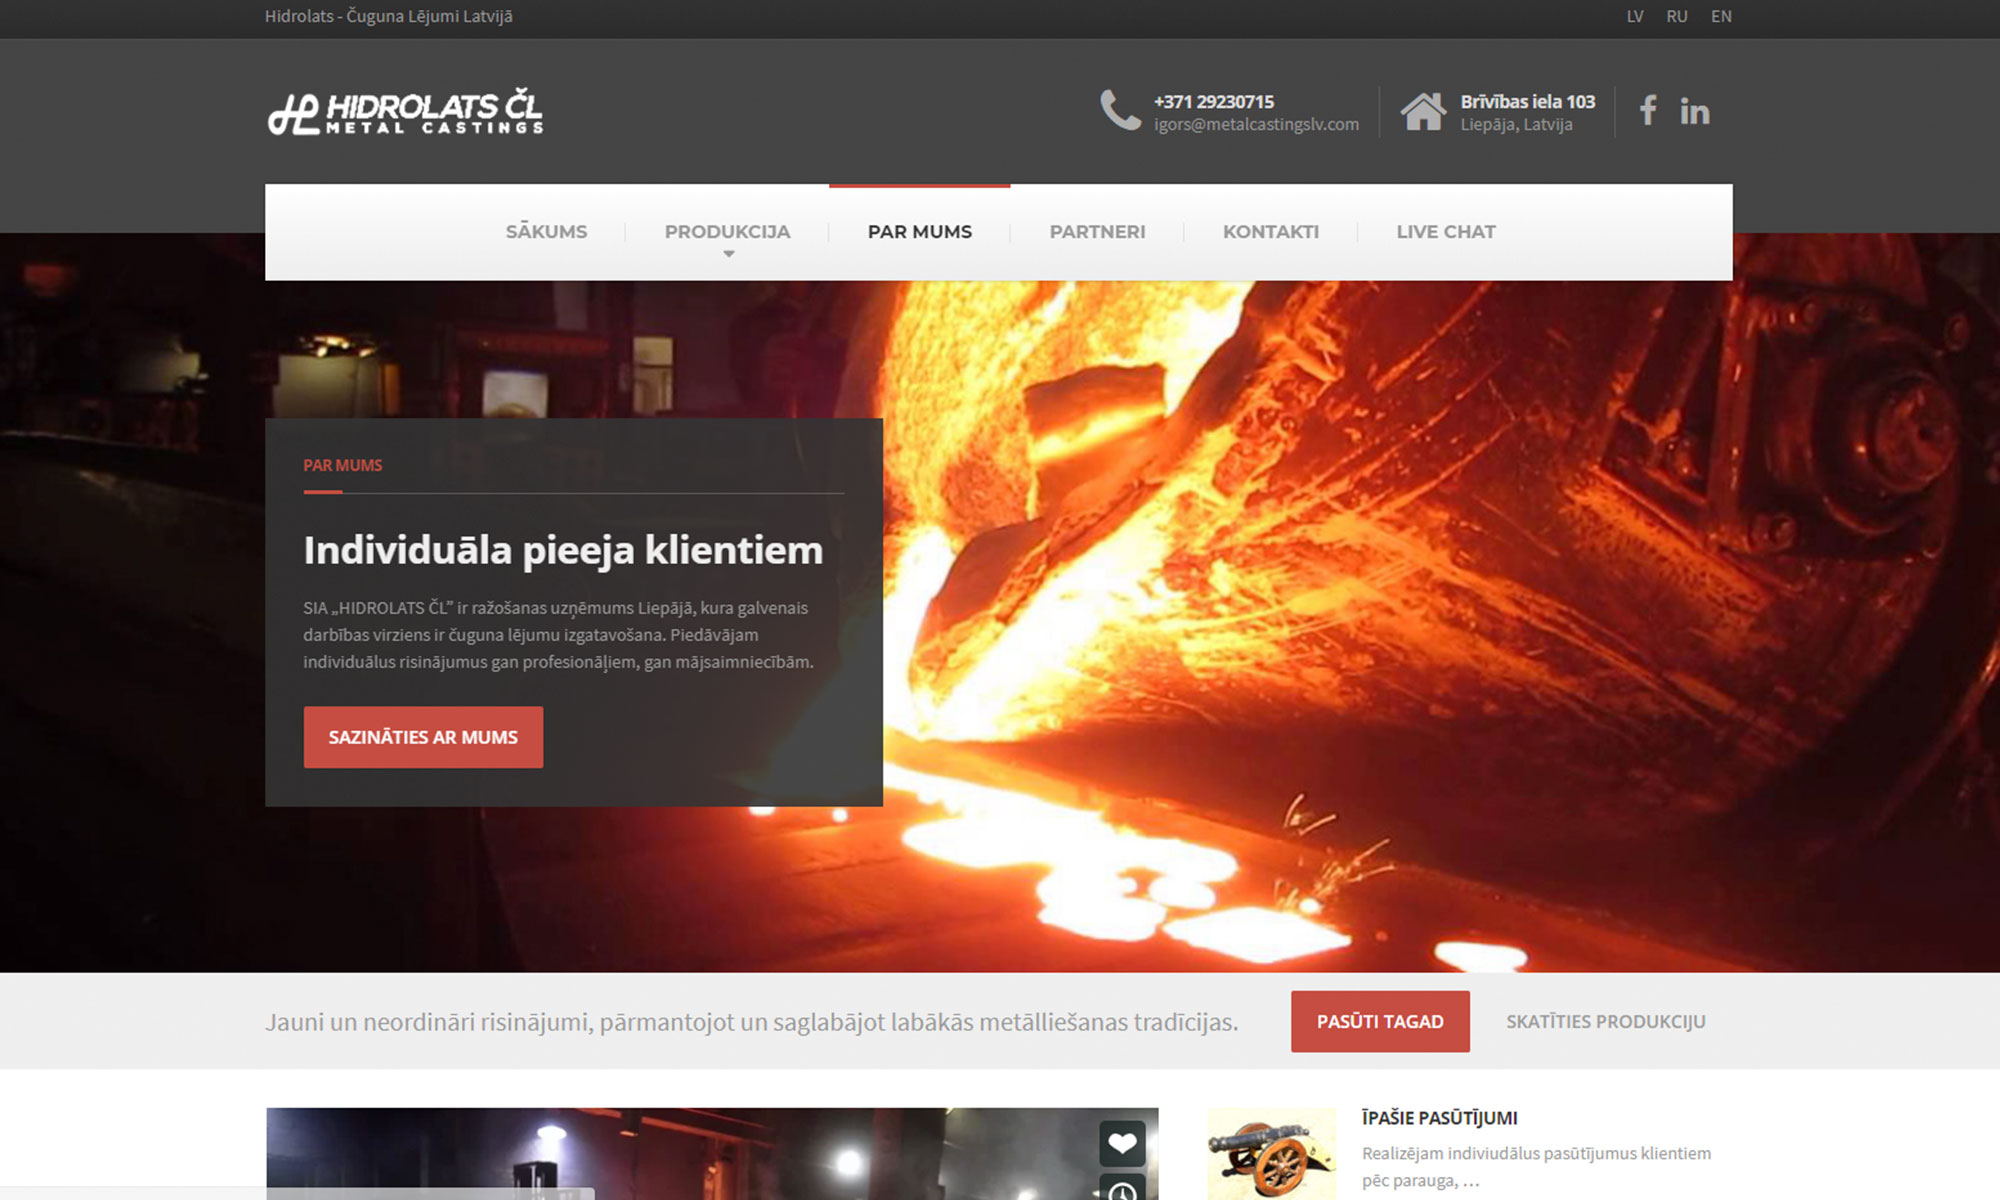 Digital-Agency-Latvia-Windcut-Hidrolats-Metal-Casting-Web-Development